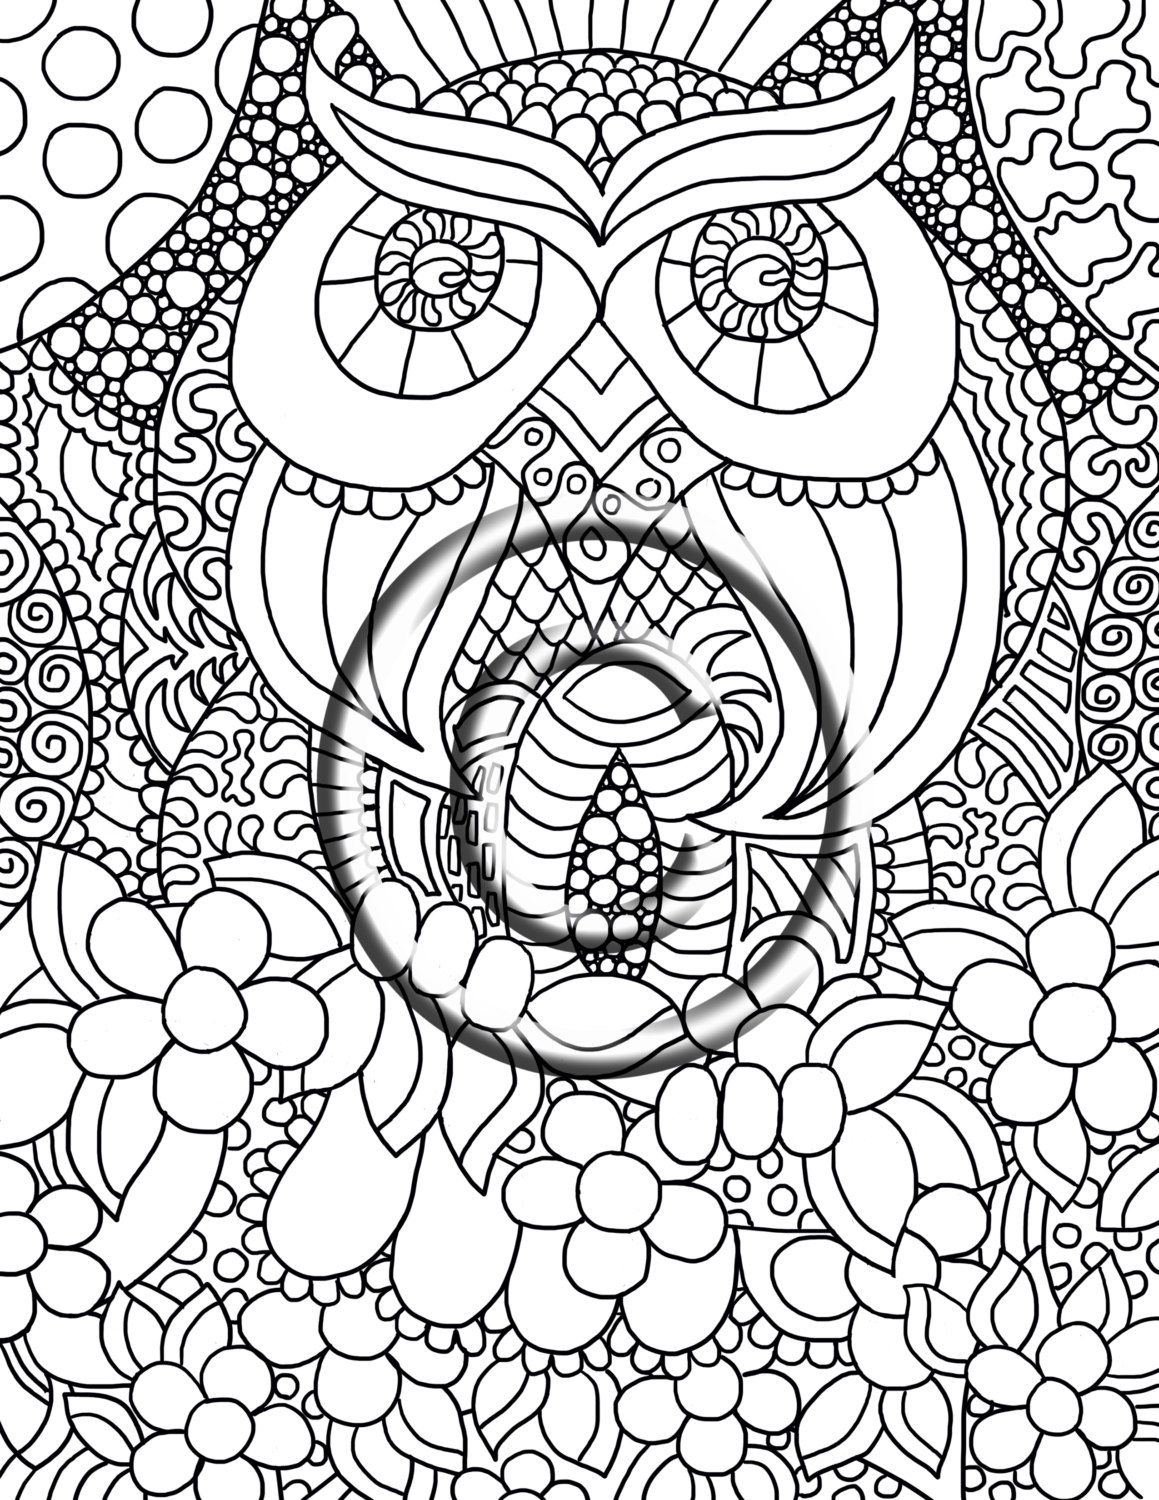 zentangle owl coloring pages - photo#20